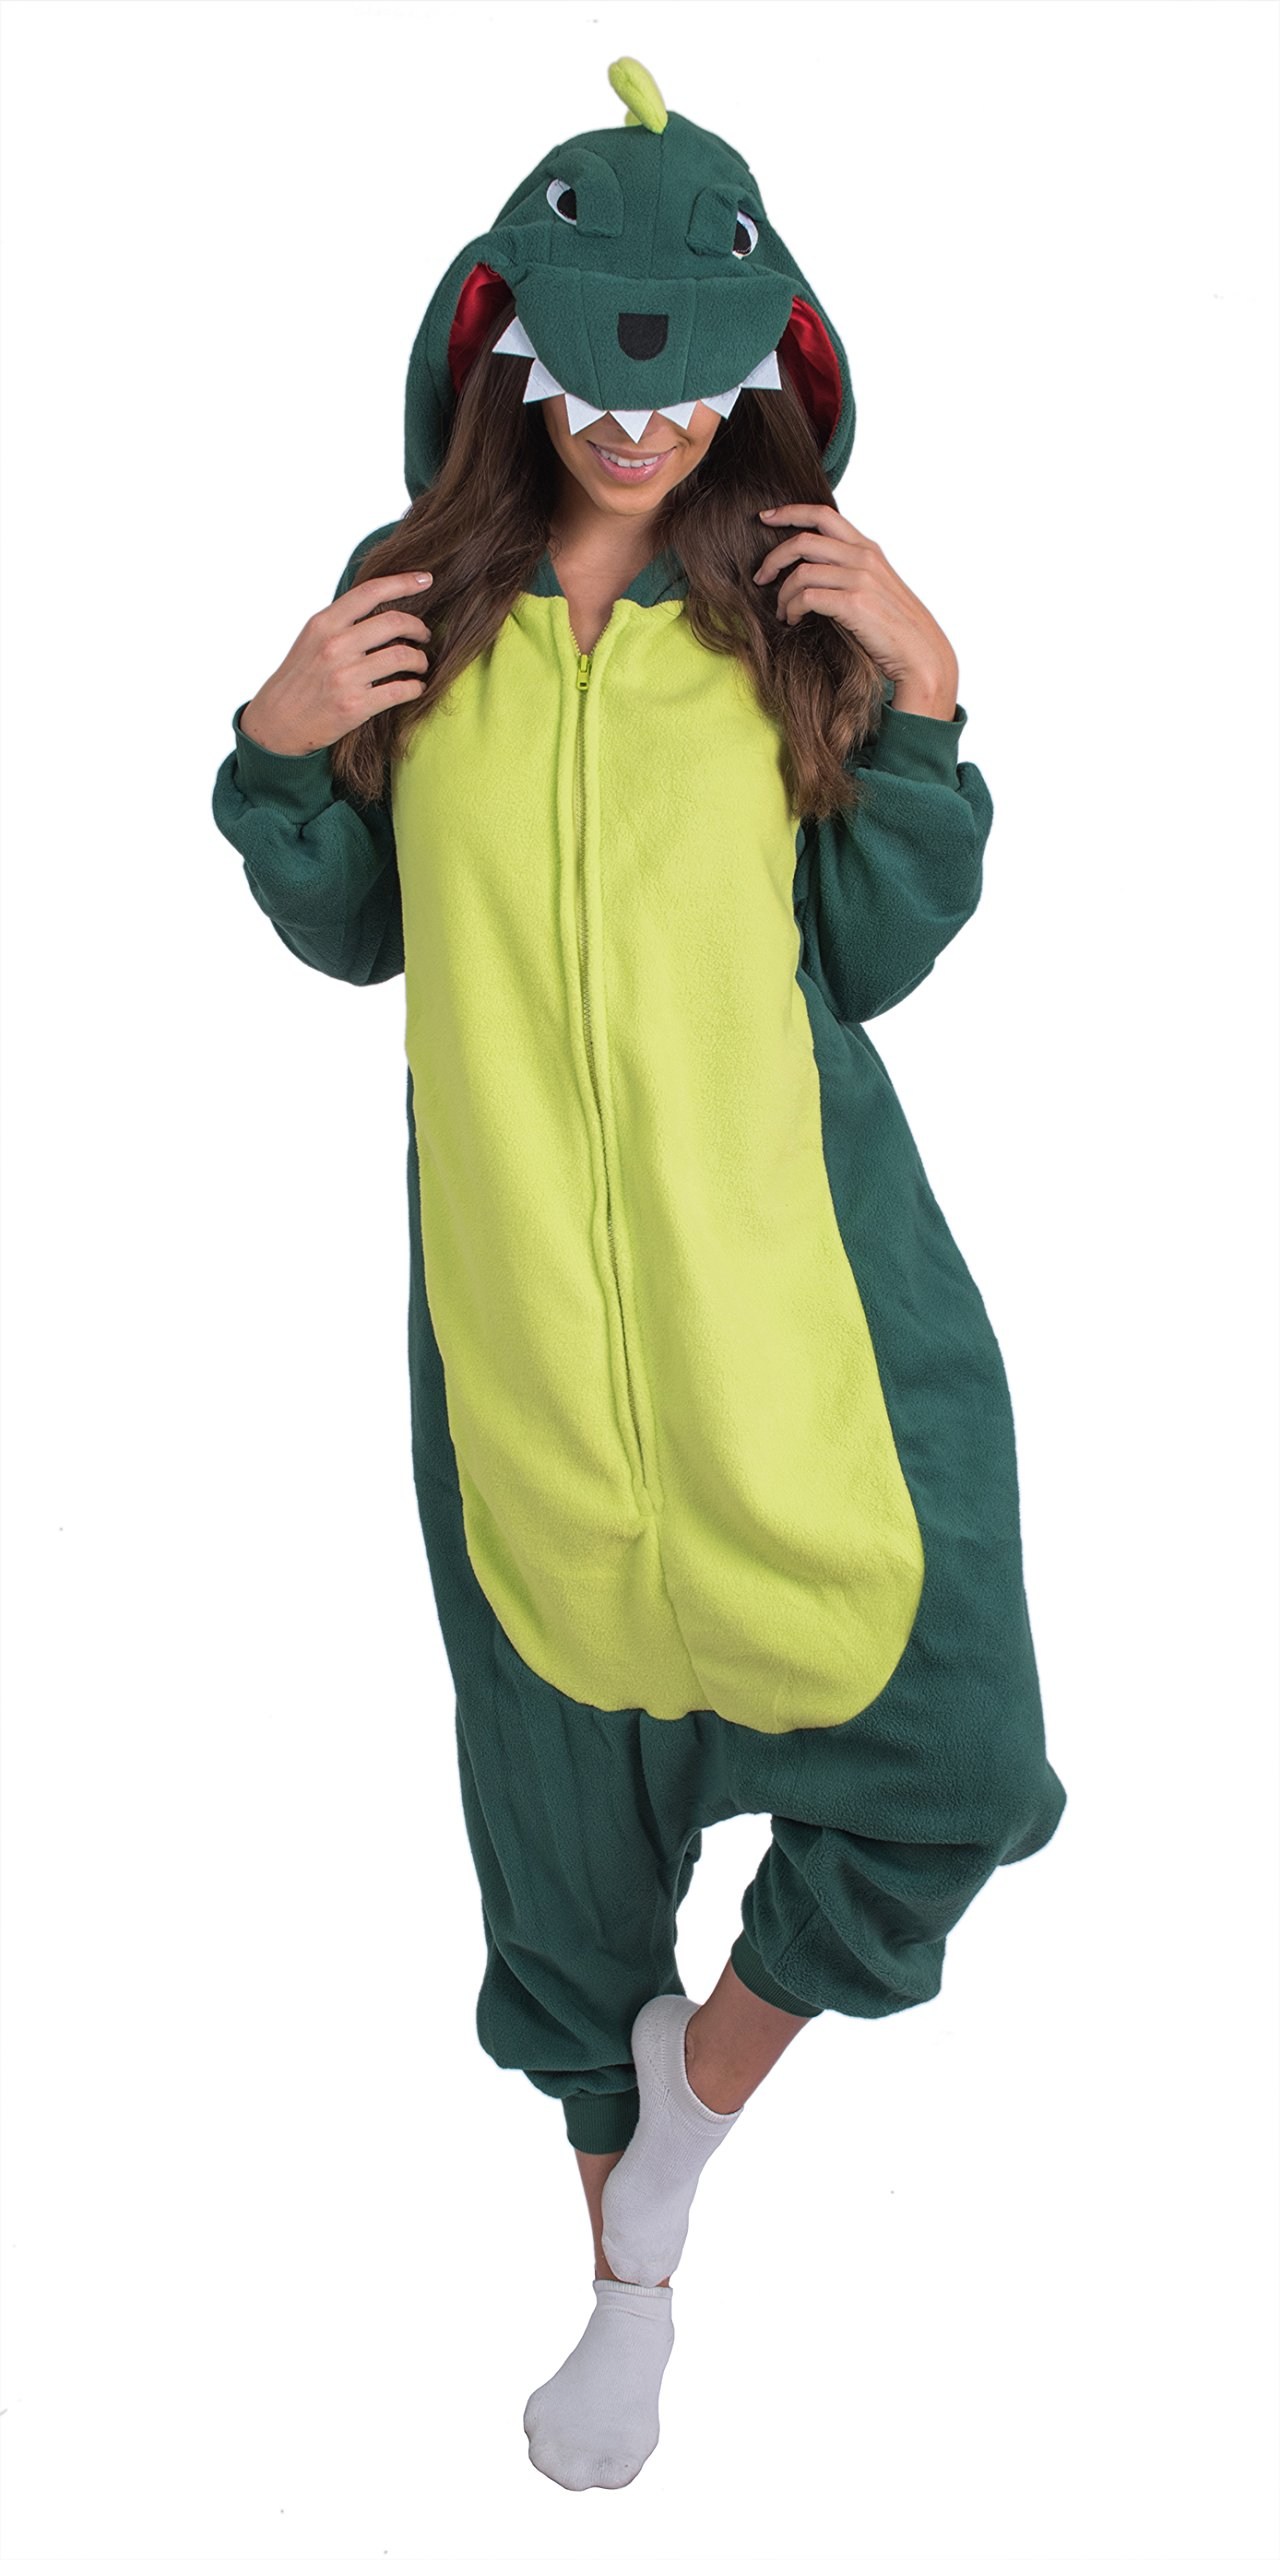 Adult Onesie Dinosaur Animal Pajamas Comfortable Costume With Zipper and Pockets (X-Large, Green Fleece)